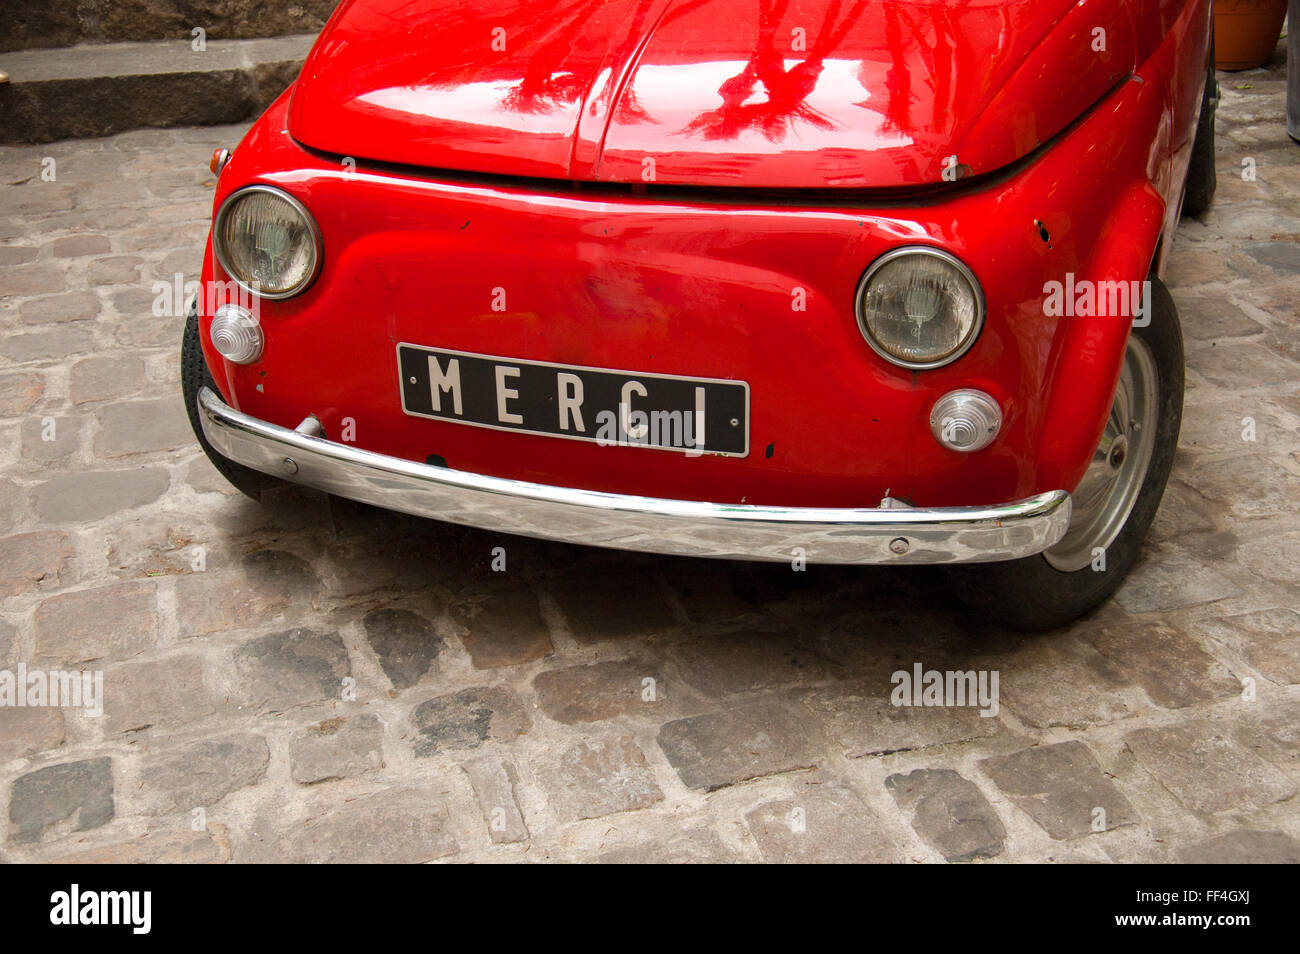 Old vintage Italian car in red with Merci written on the plate - Stock Image